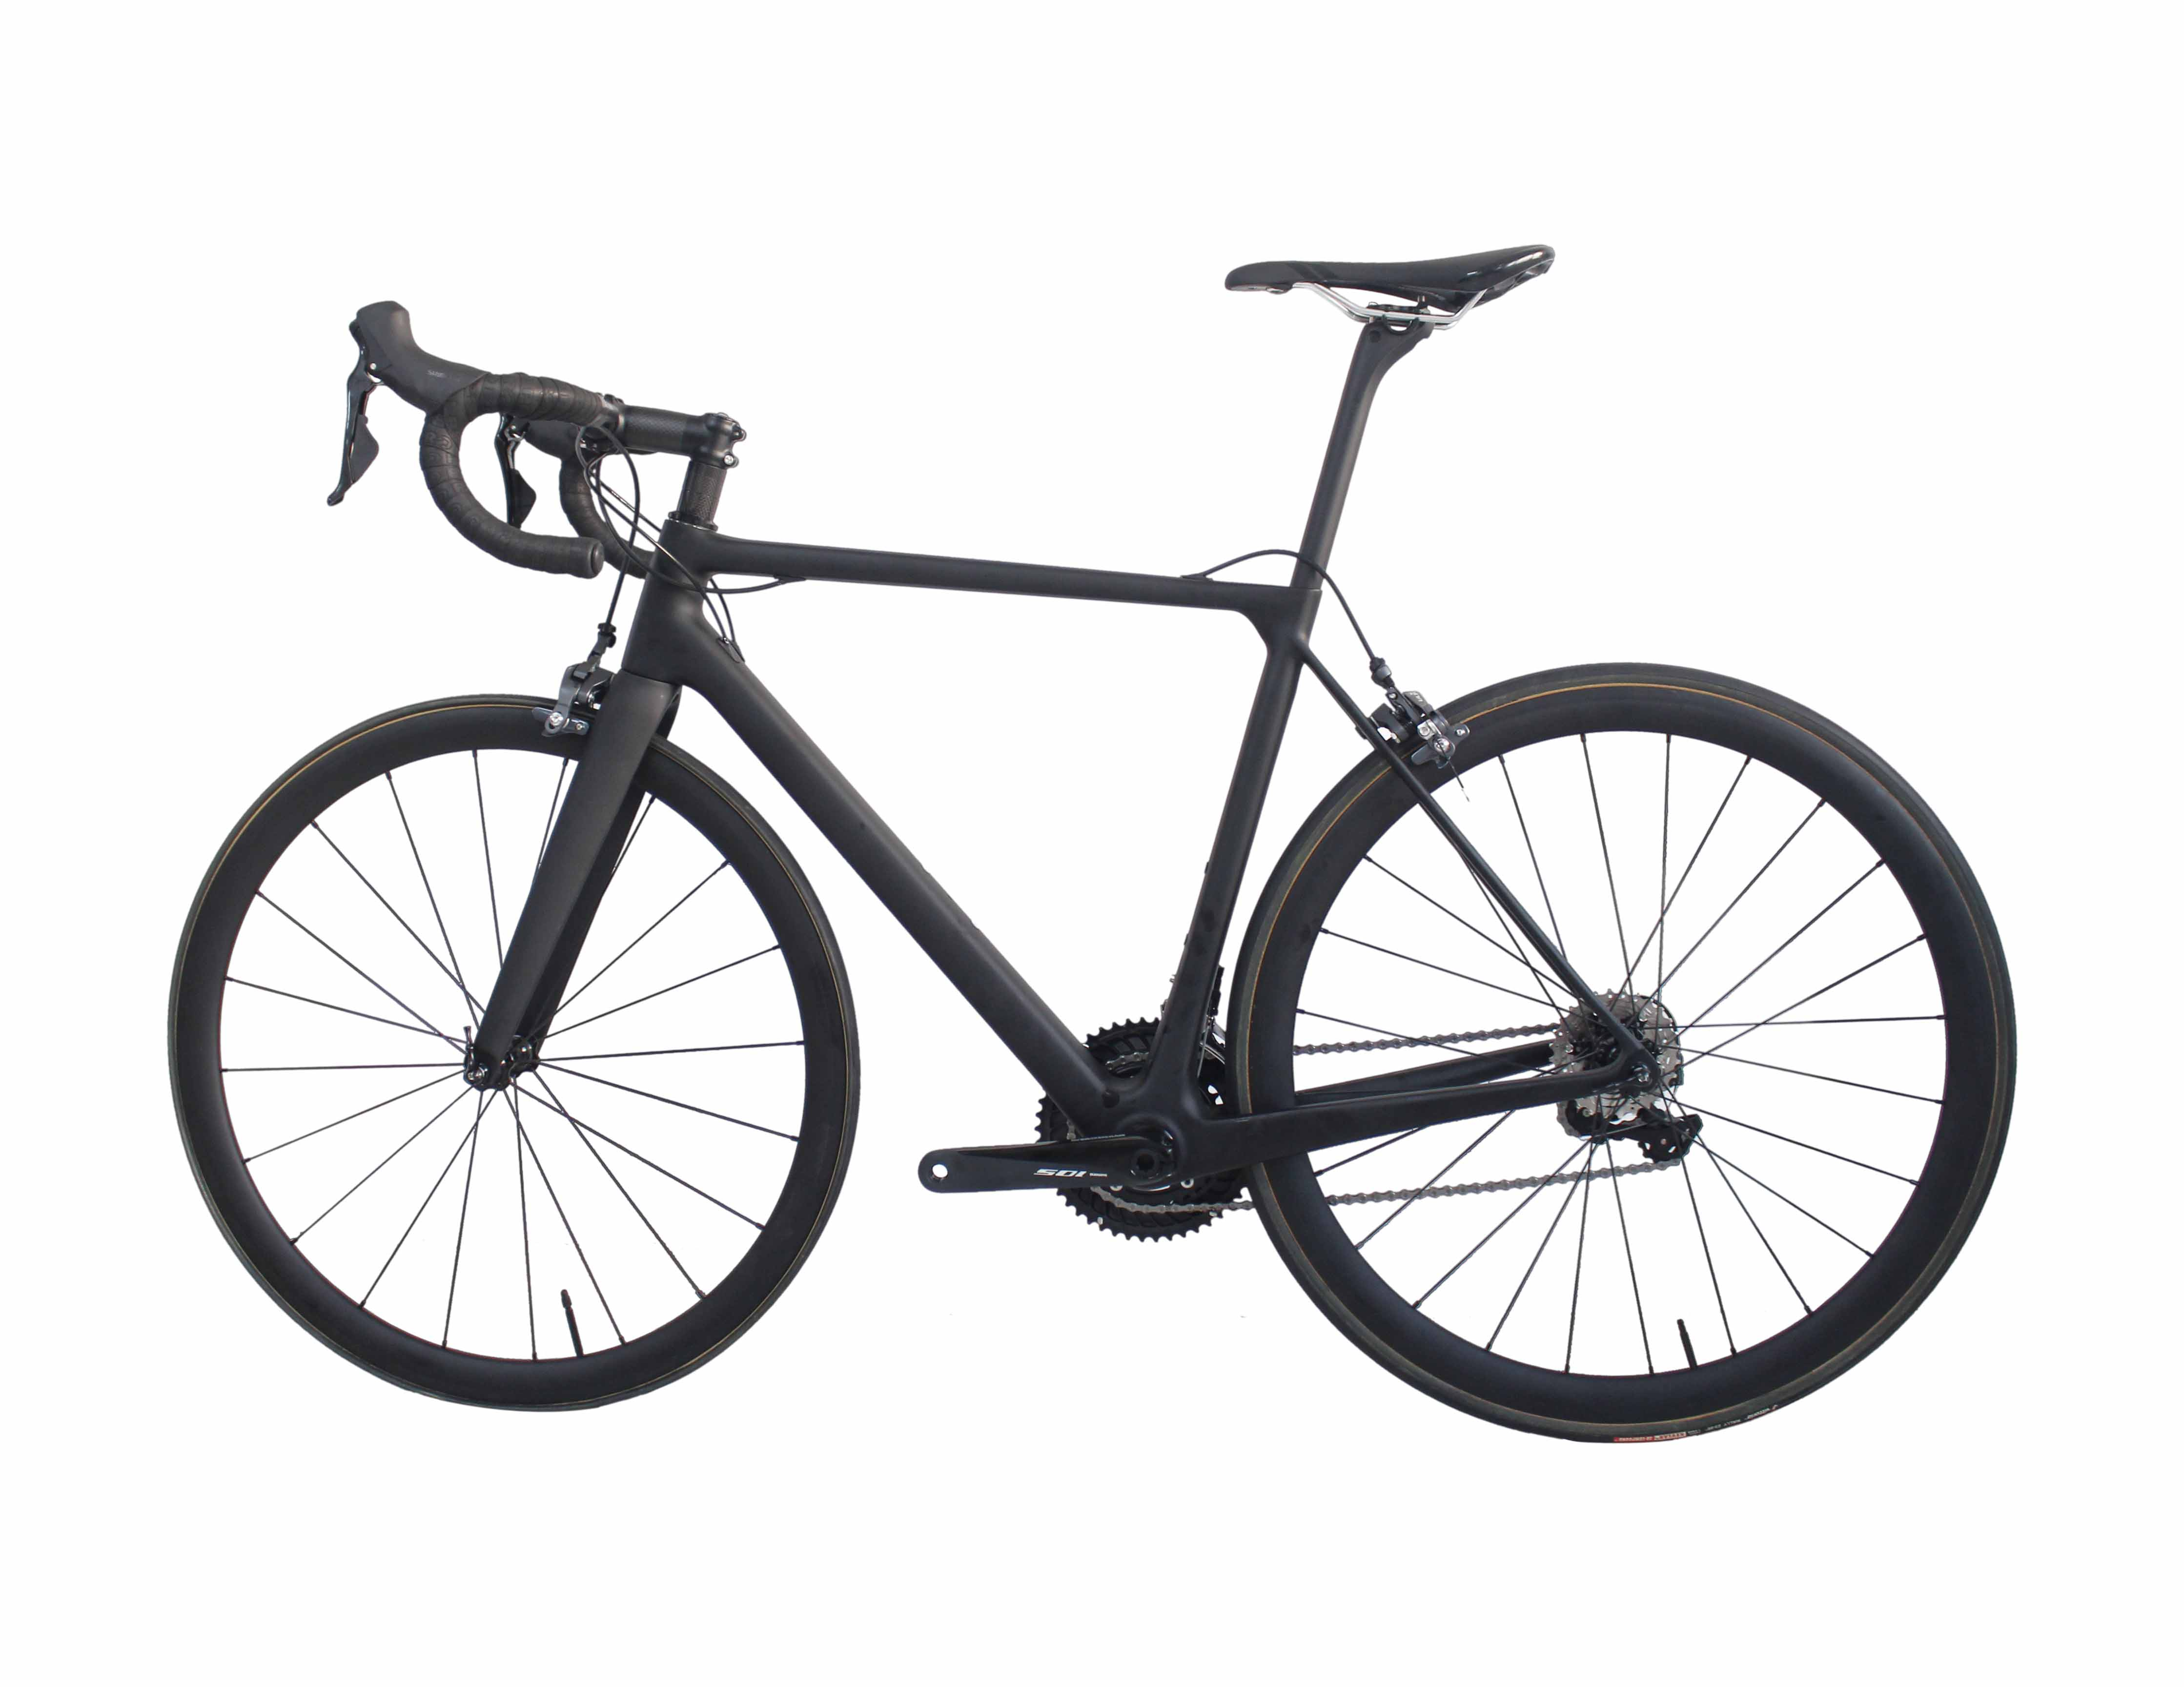 2020 Carbon Road bike Complete Bicycle Carbon with R7000 groupset,11 speed carbon bike